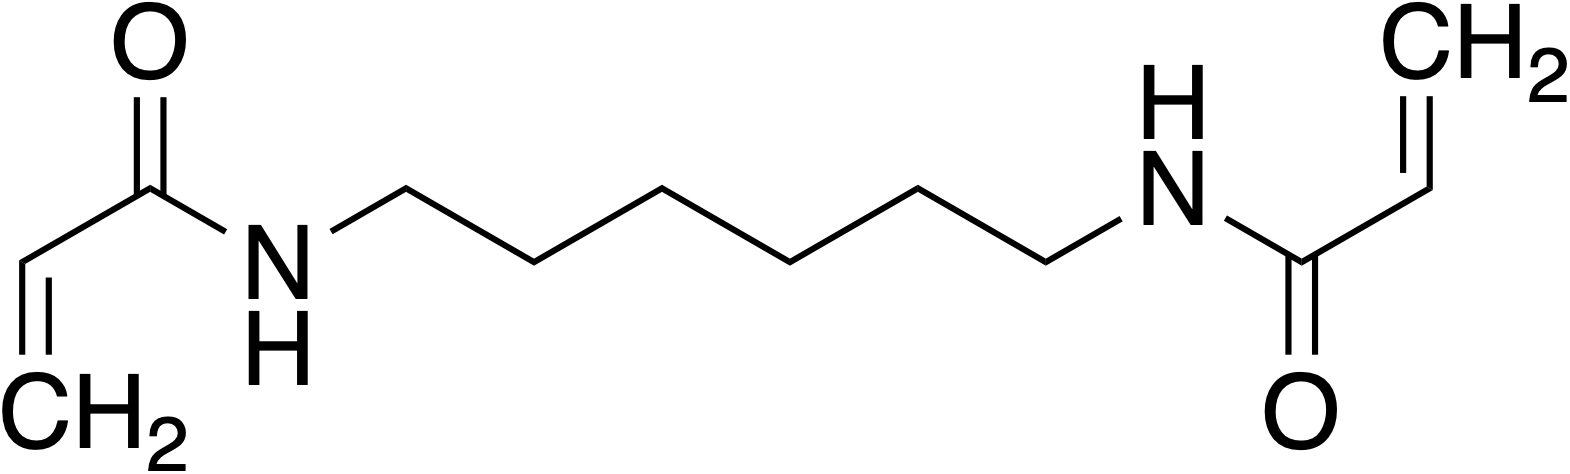 1,6-Hexamethylenebisacrylamide